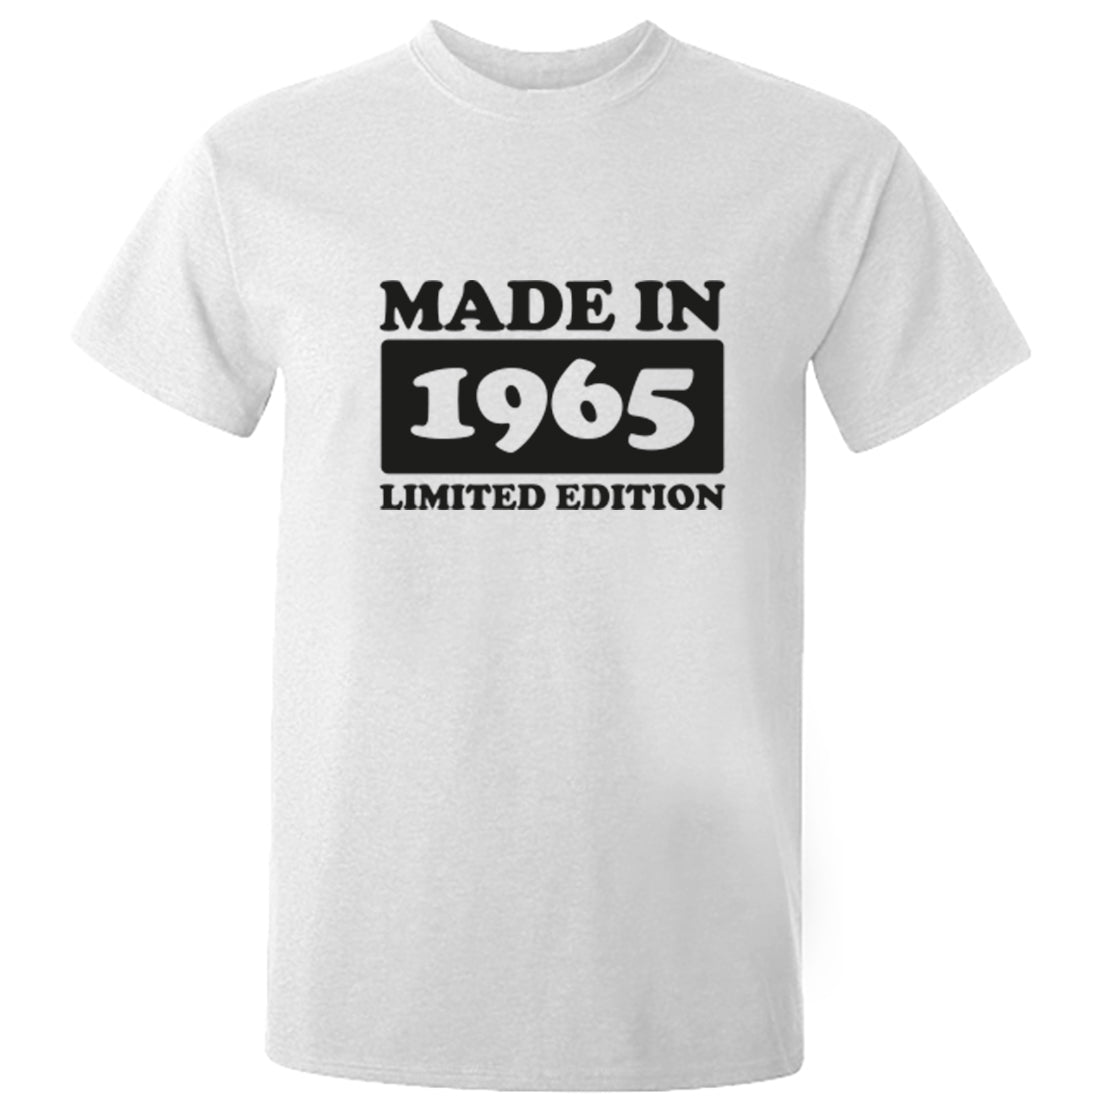 Made In 1965 Limited Edition Unisex Fit T-Shirt K1922 - Illustrated Identity Ltd.